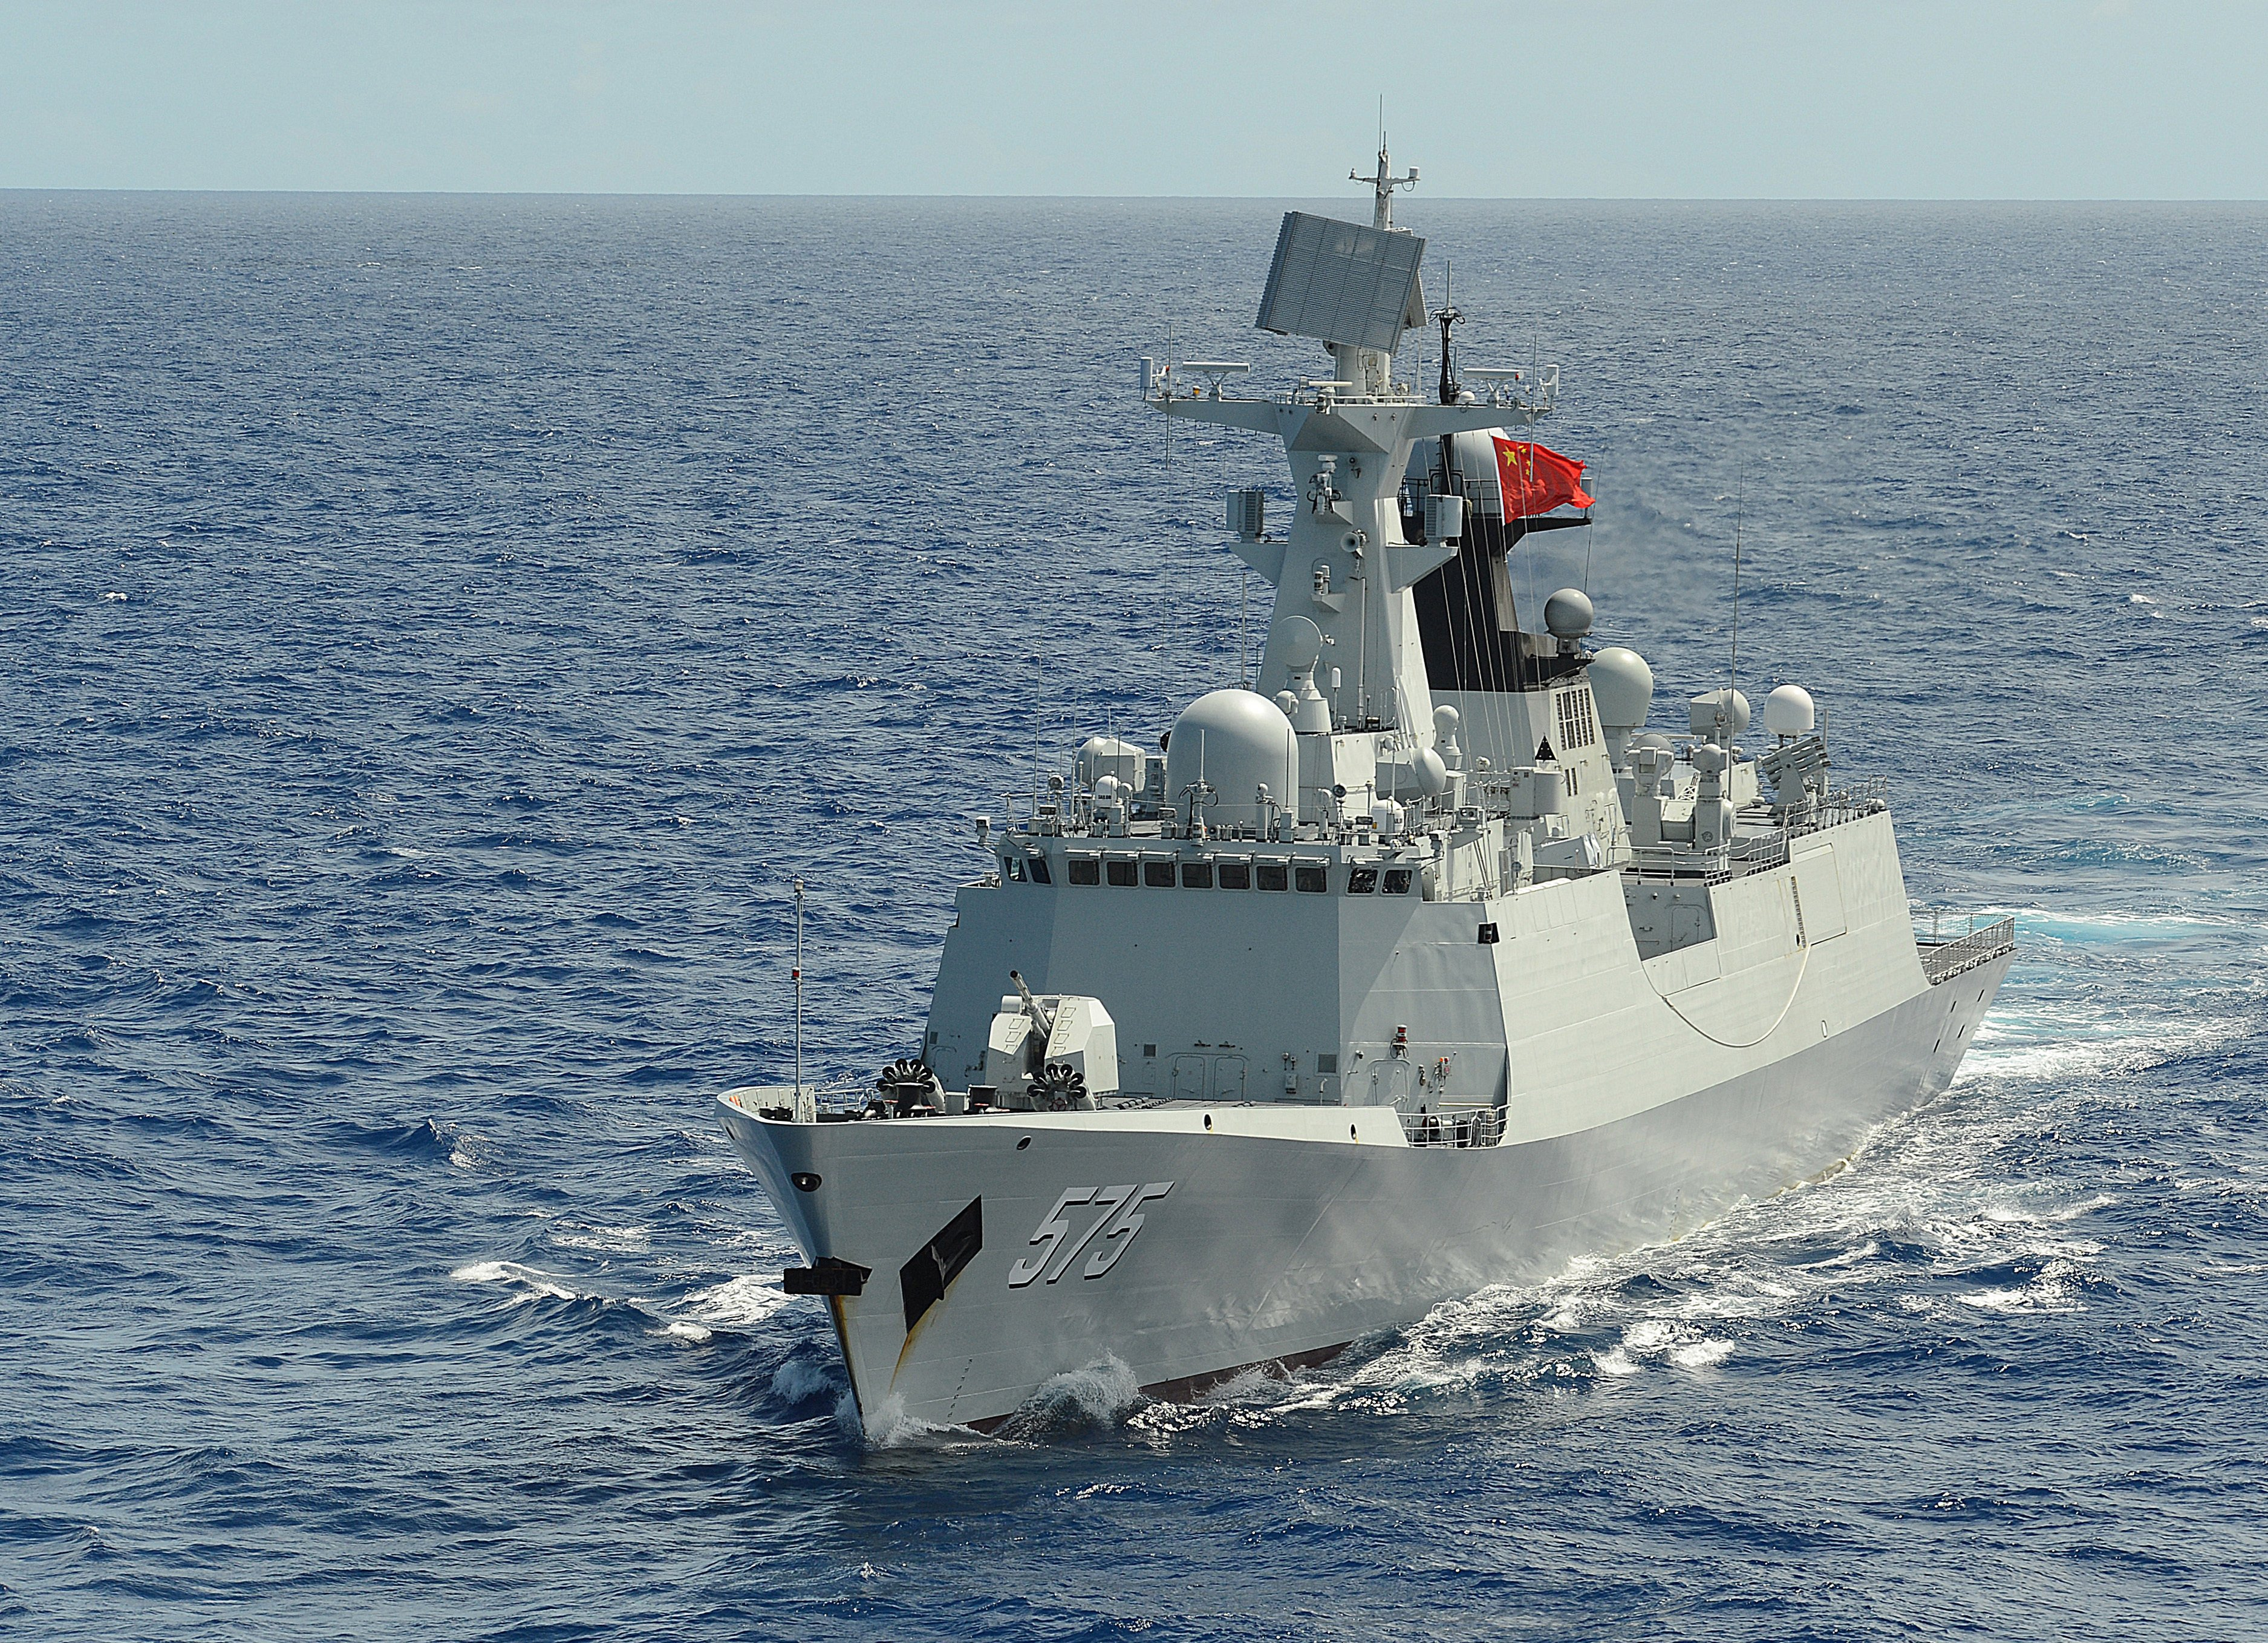 People's Republic of China, People's Liberation Army (Navy) frigate PLA(N) Yueyang (FF 575) steams in formation with 42 other ships and submarines representing 15 international partner nations during Rim of the Pacific (RIMPAC) Exercise 2014. US Navy photo.